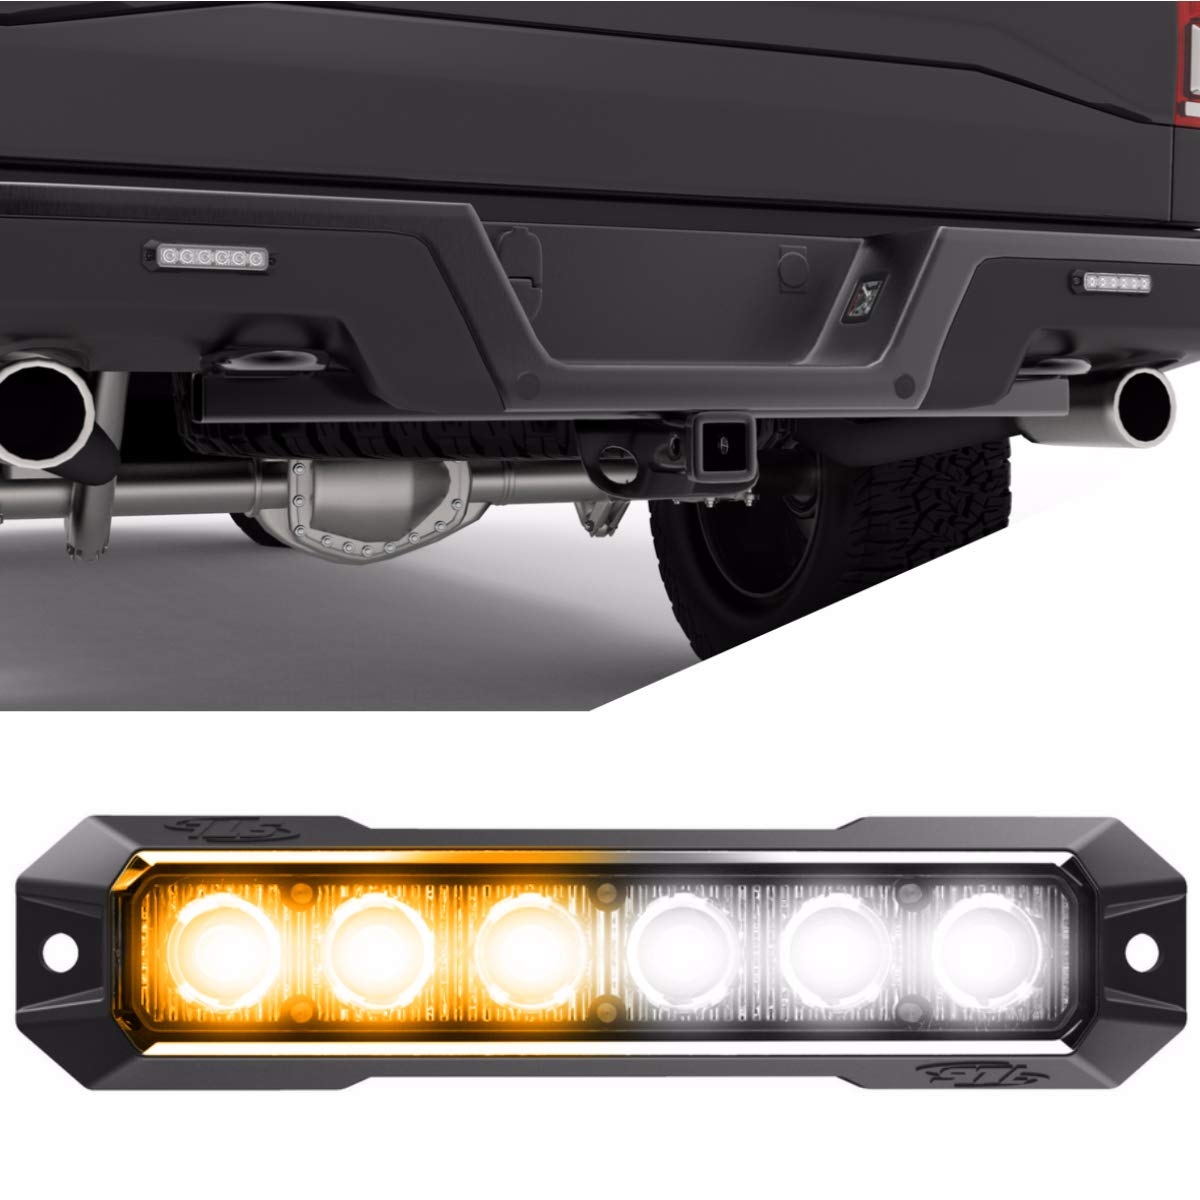 SpeedTech Lights Z-6 TIR 18W LED Strobe Light for Police Cars, Construction Trucks, Service Vehicles, Plows, Emergency Vehicles. Surface Mount Grille Flashing Hazard Beacon Light - Amber/Clear